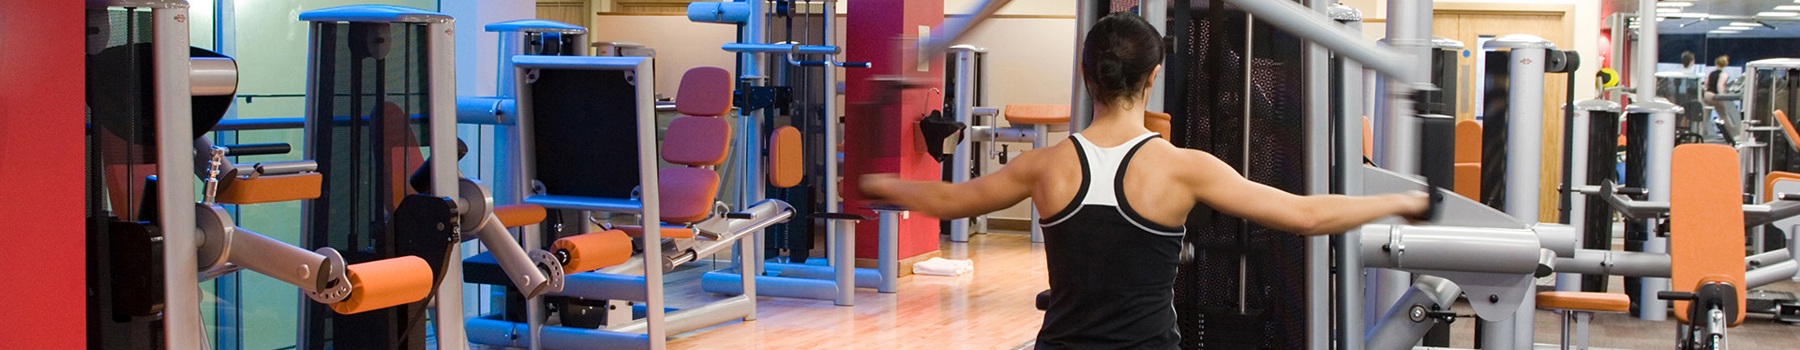 Inspire Your Members with New Group Fitness Classes